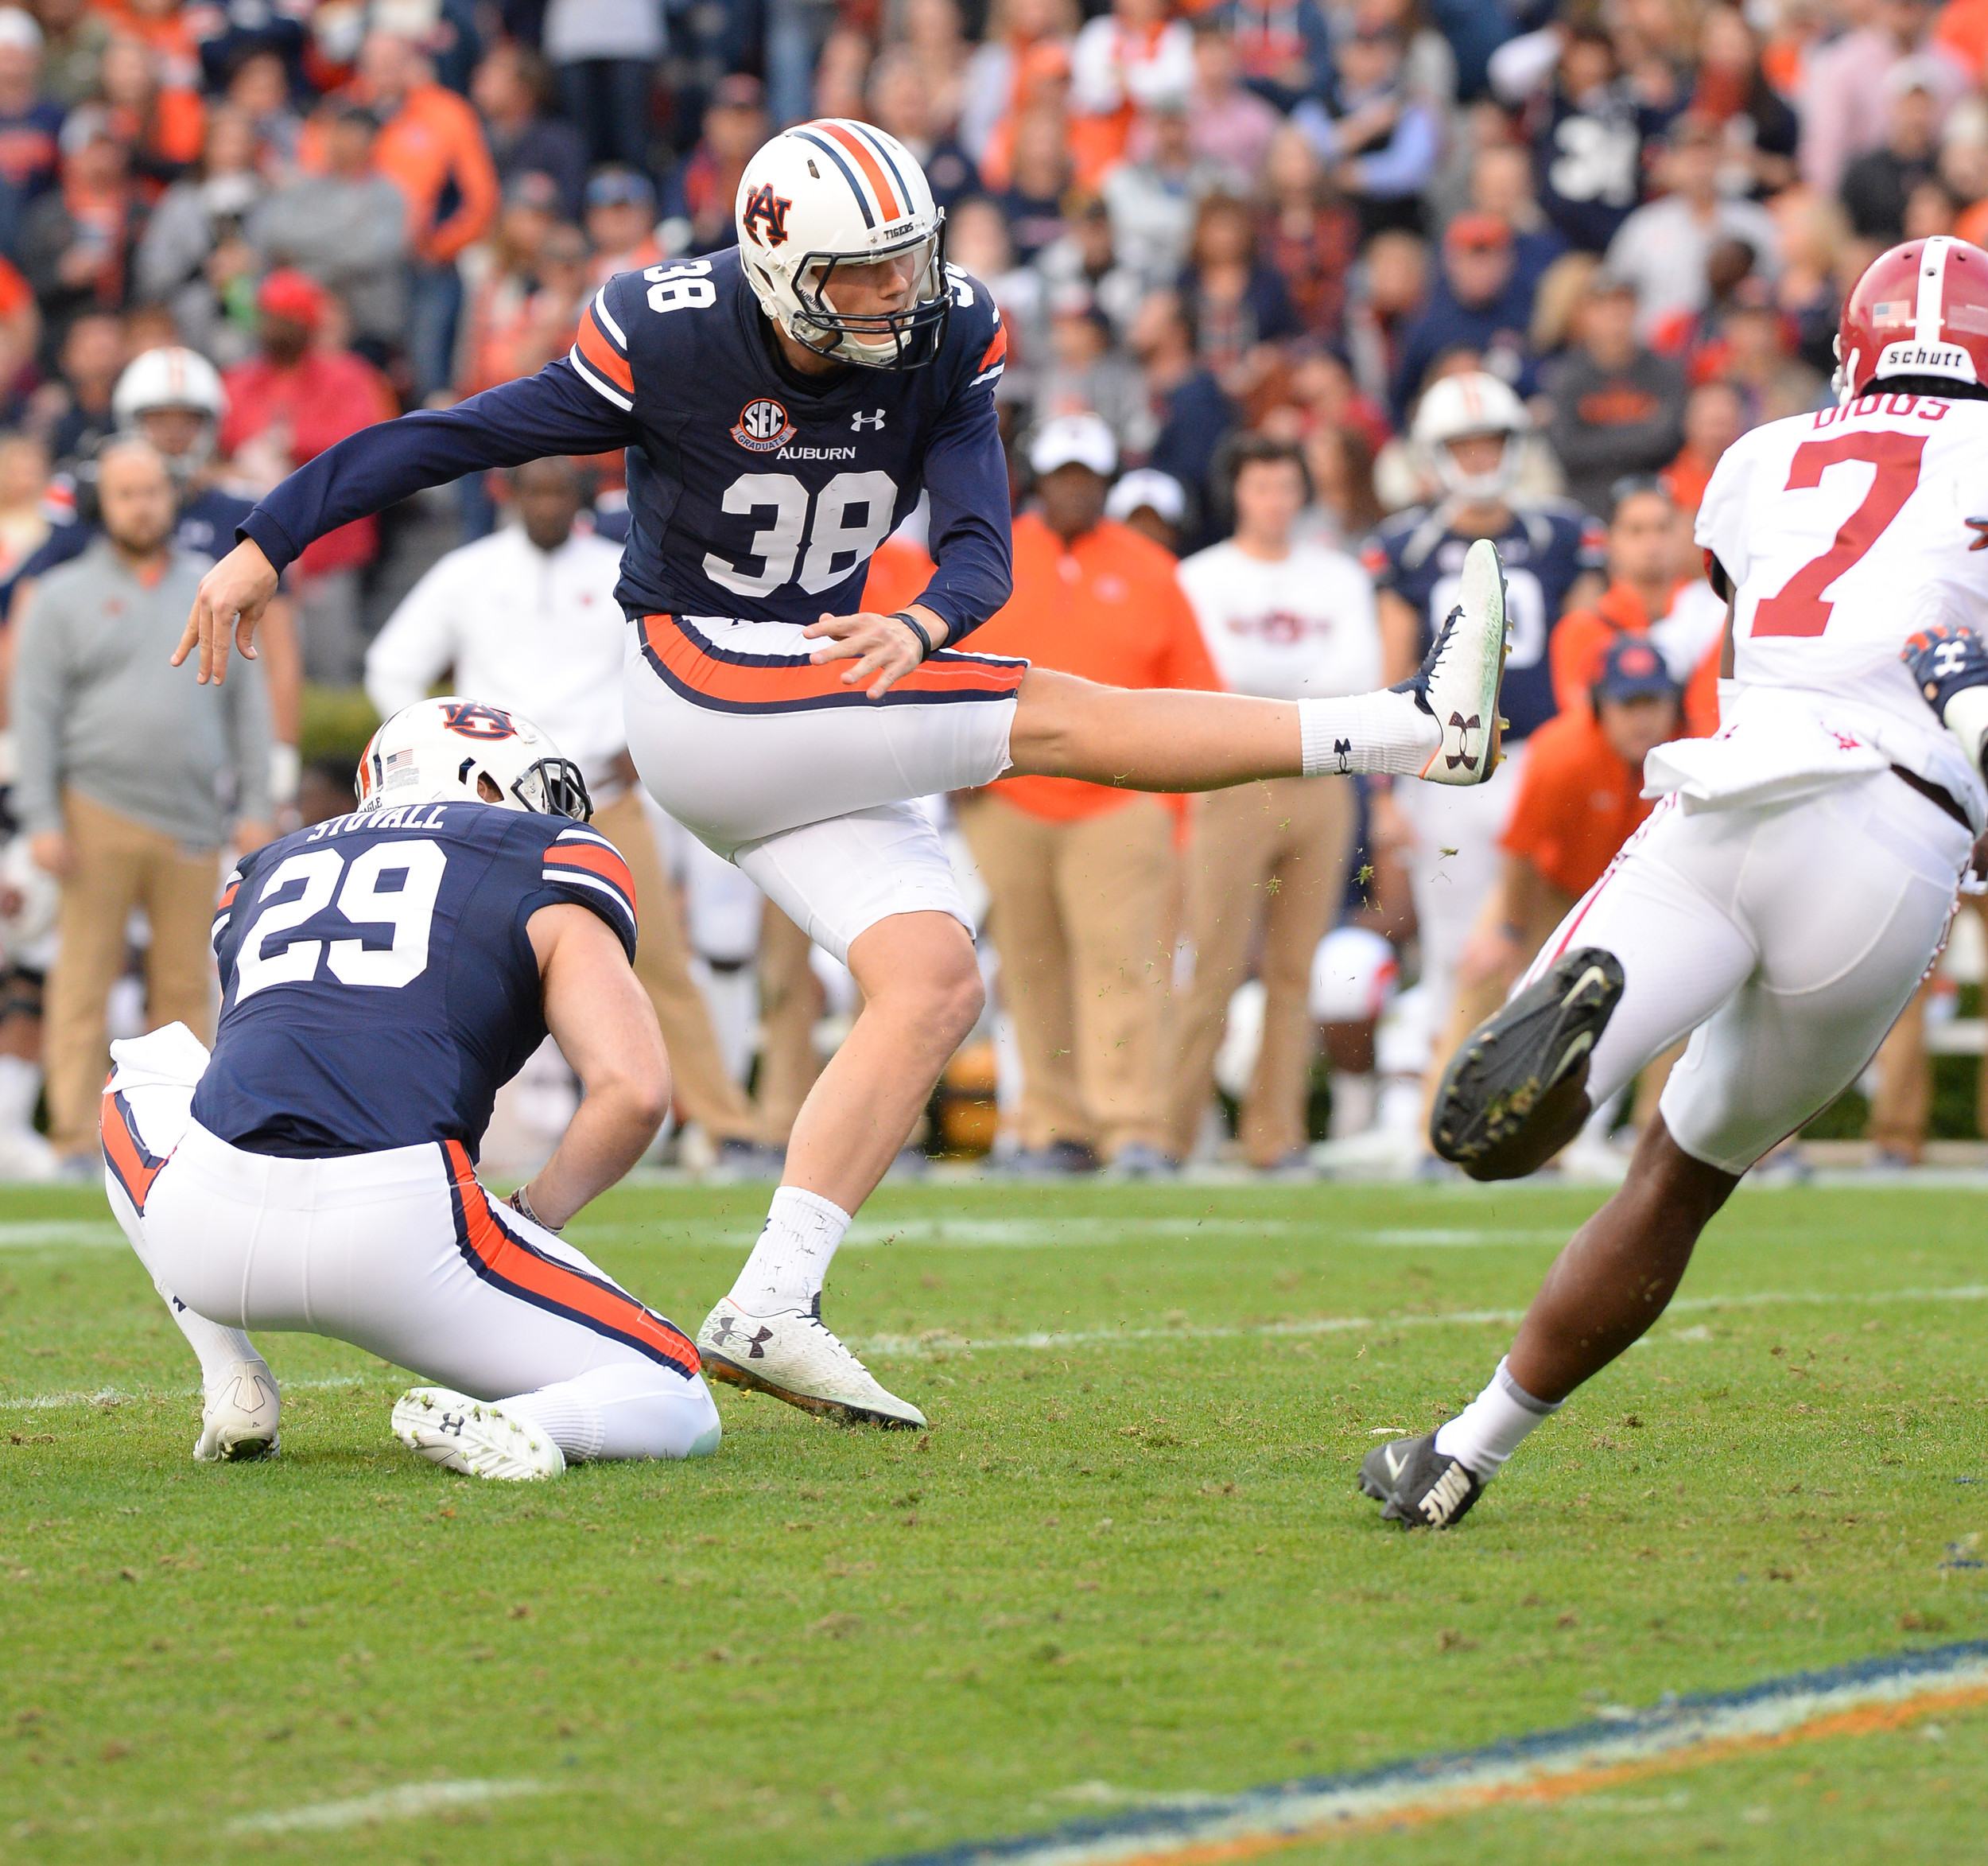 Auburn Tigers place kicker Daniel Carlson (38) kicks a field goal during the first half of Saturday's game, at Jordan-Hare Stadium.